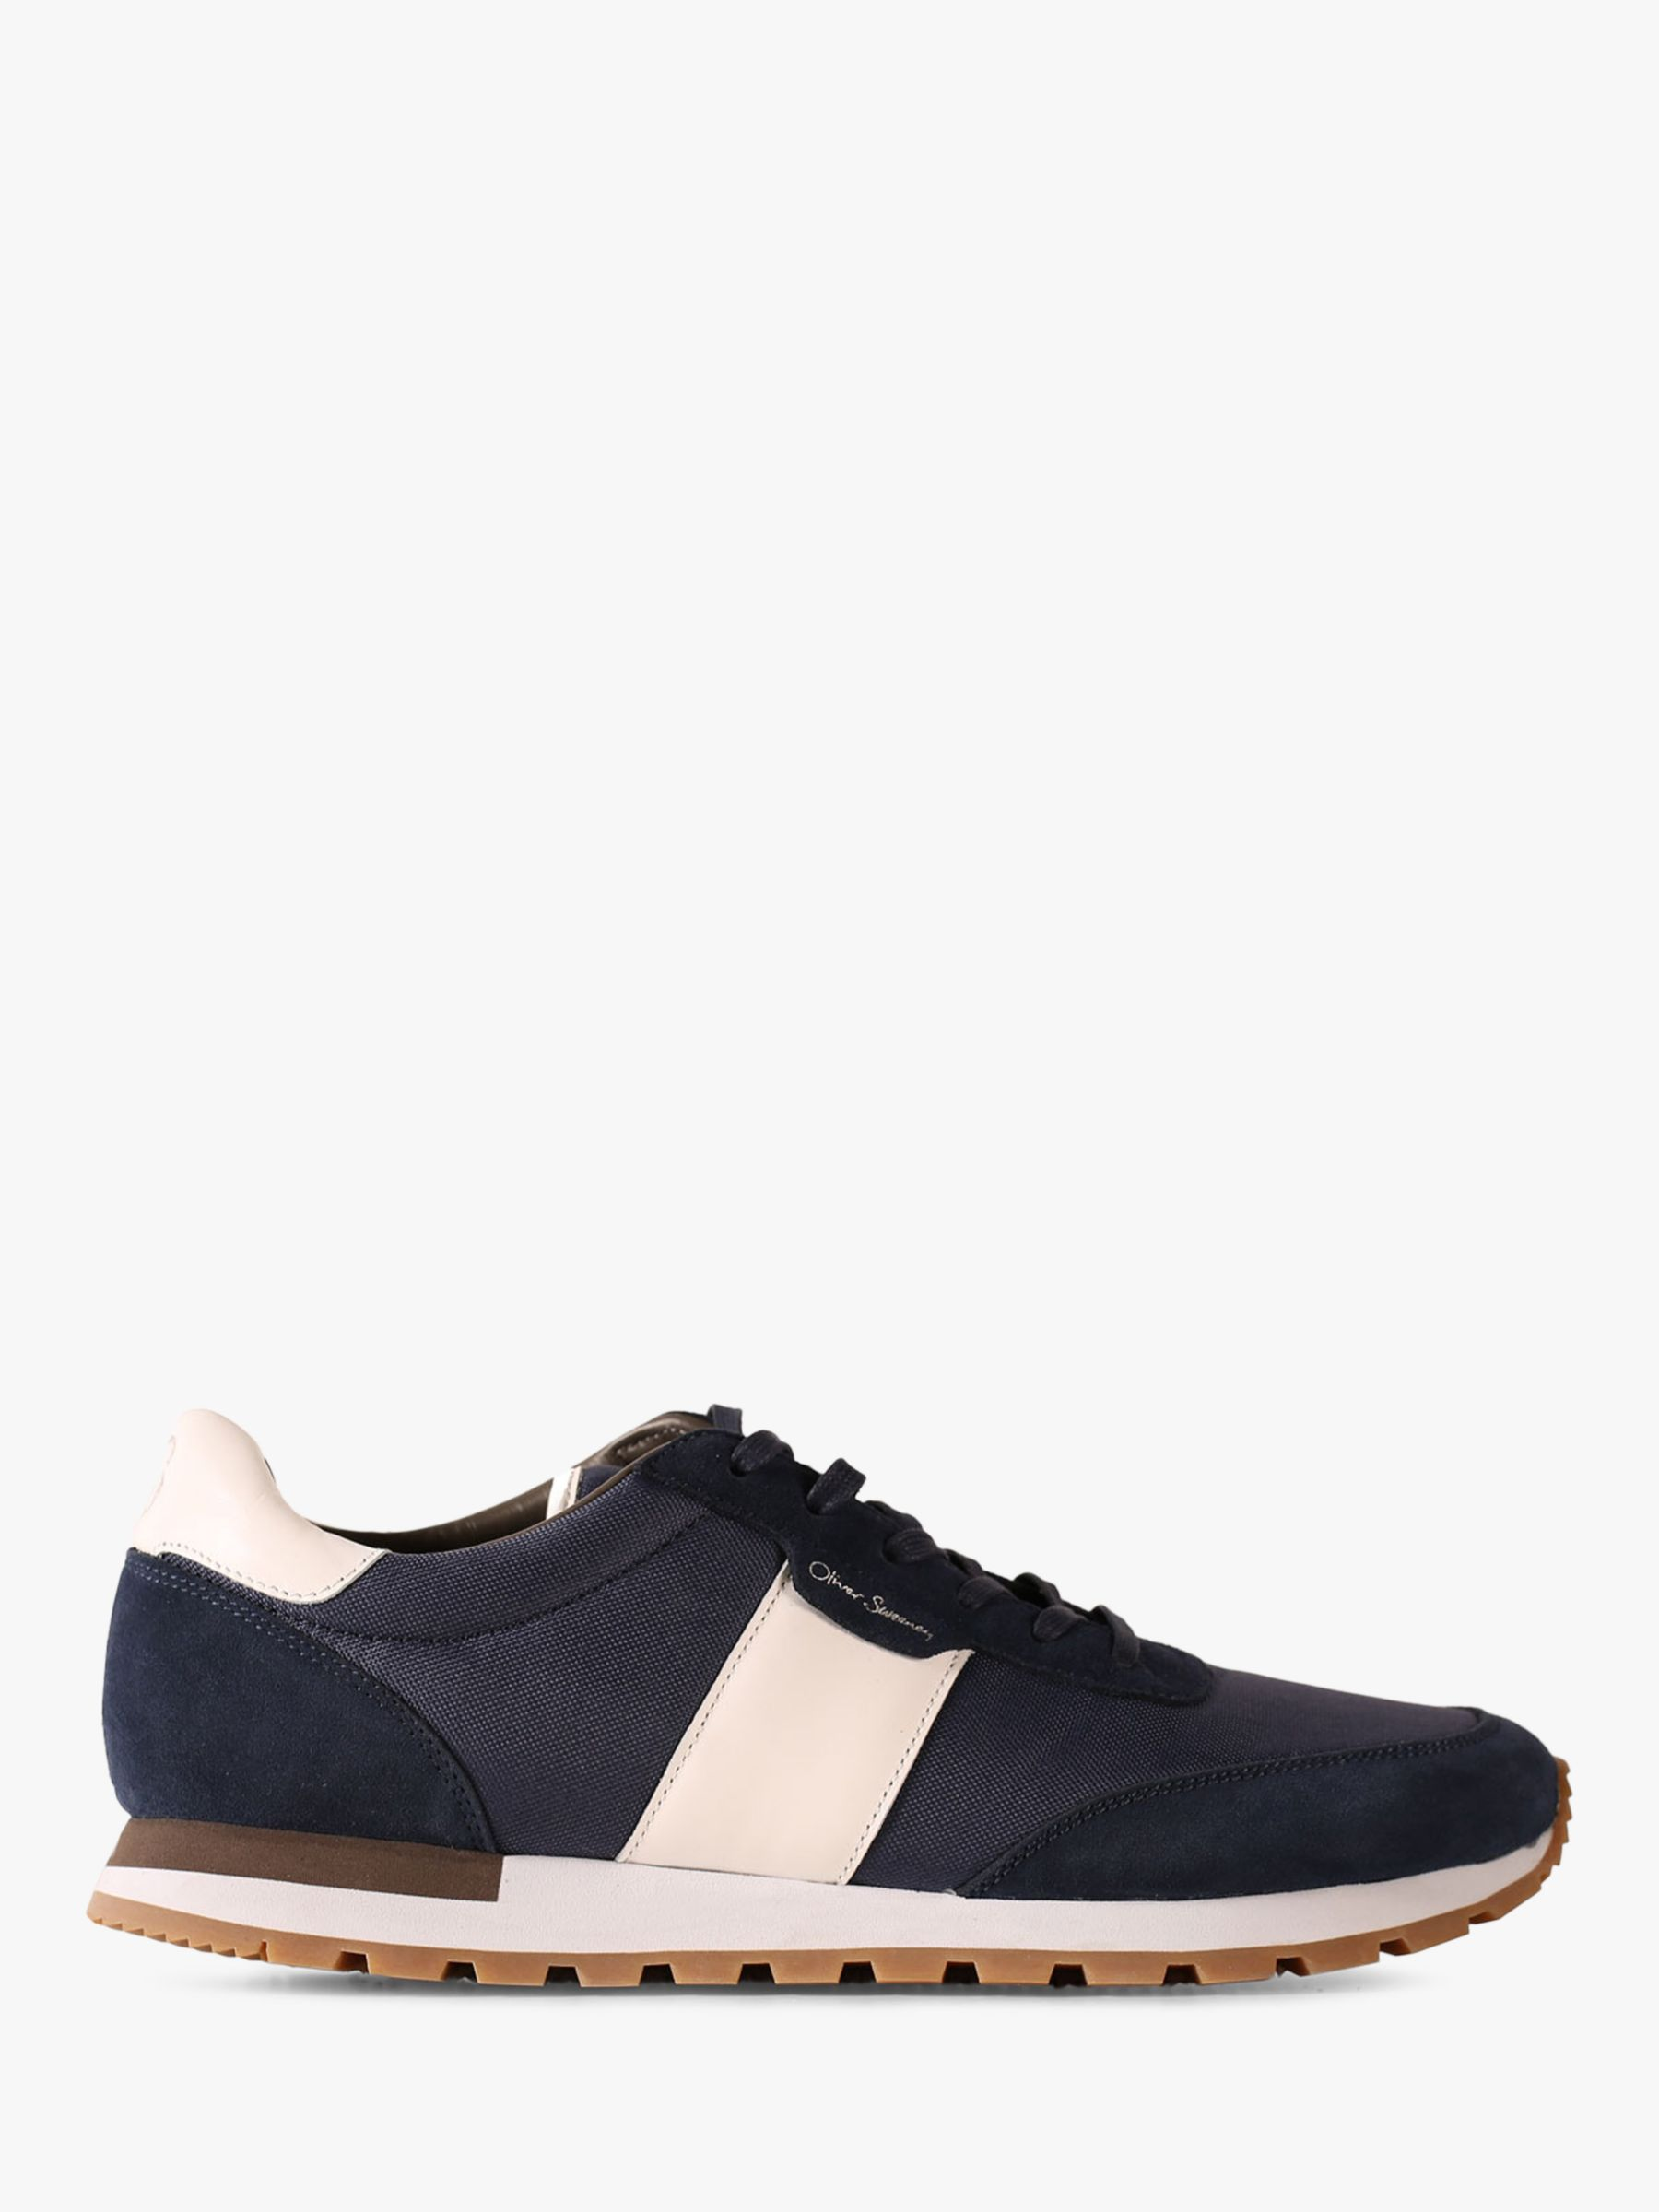 Oliver Sweeney Oliver Sweeney Shurton Suede Trainers, Navy